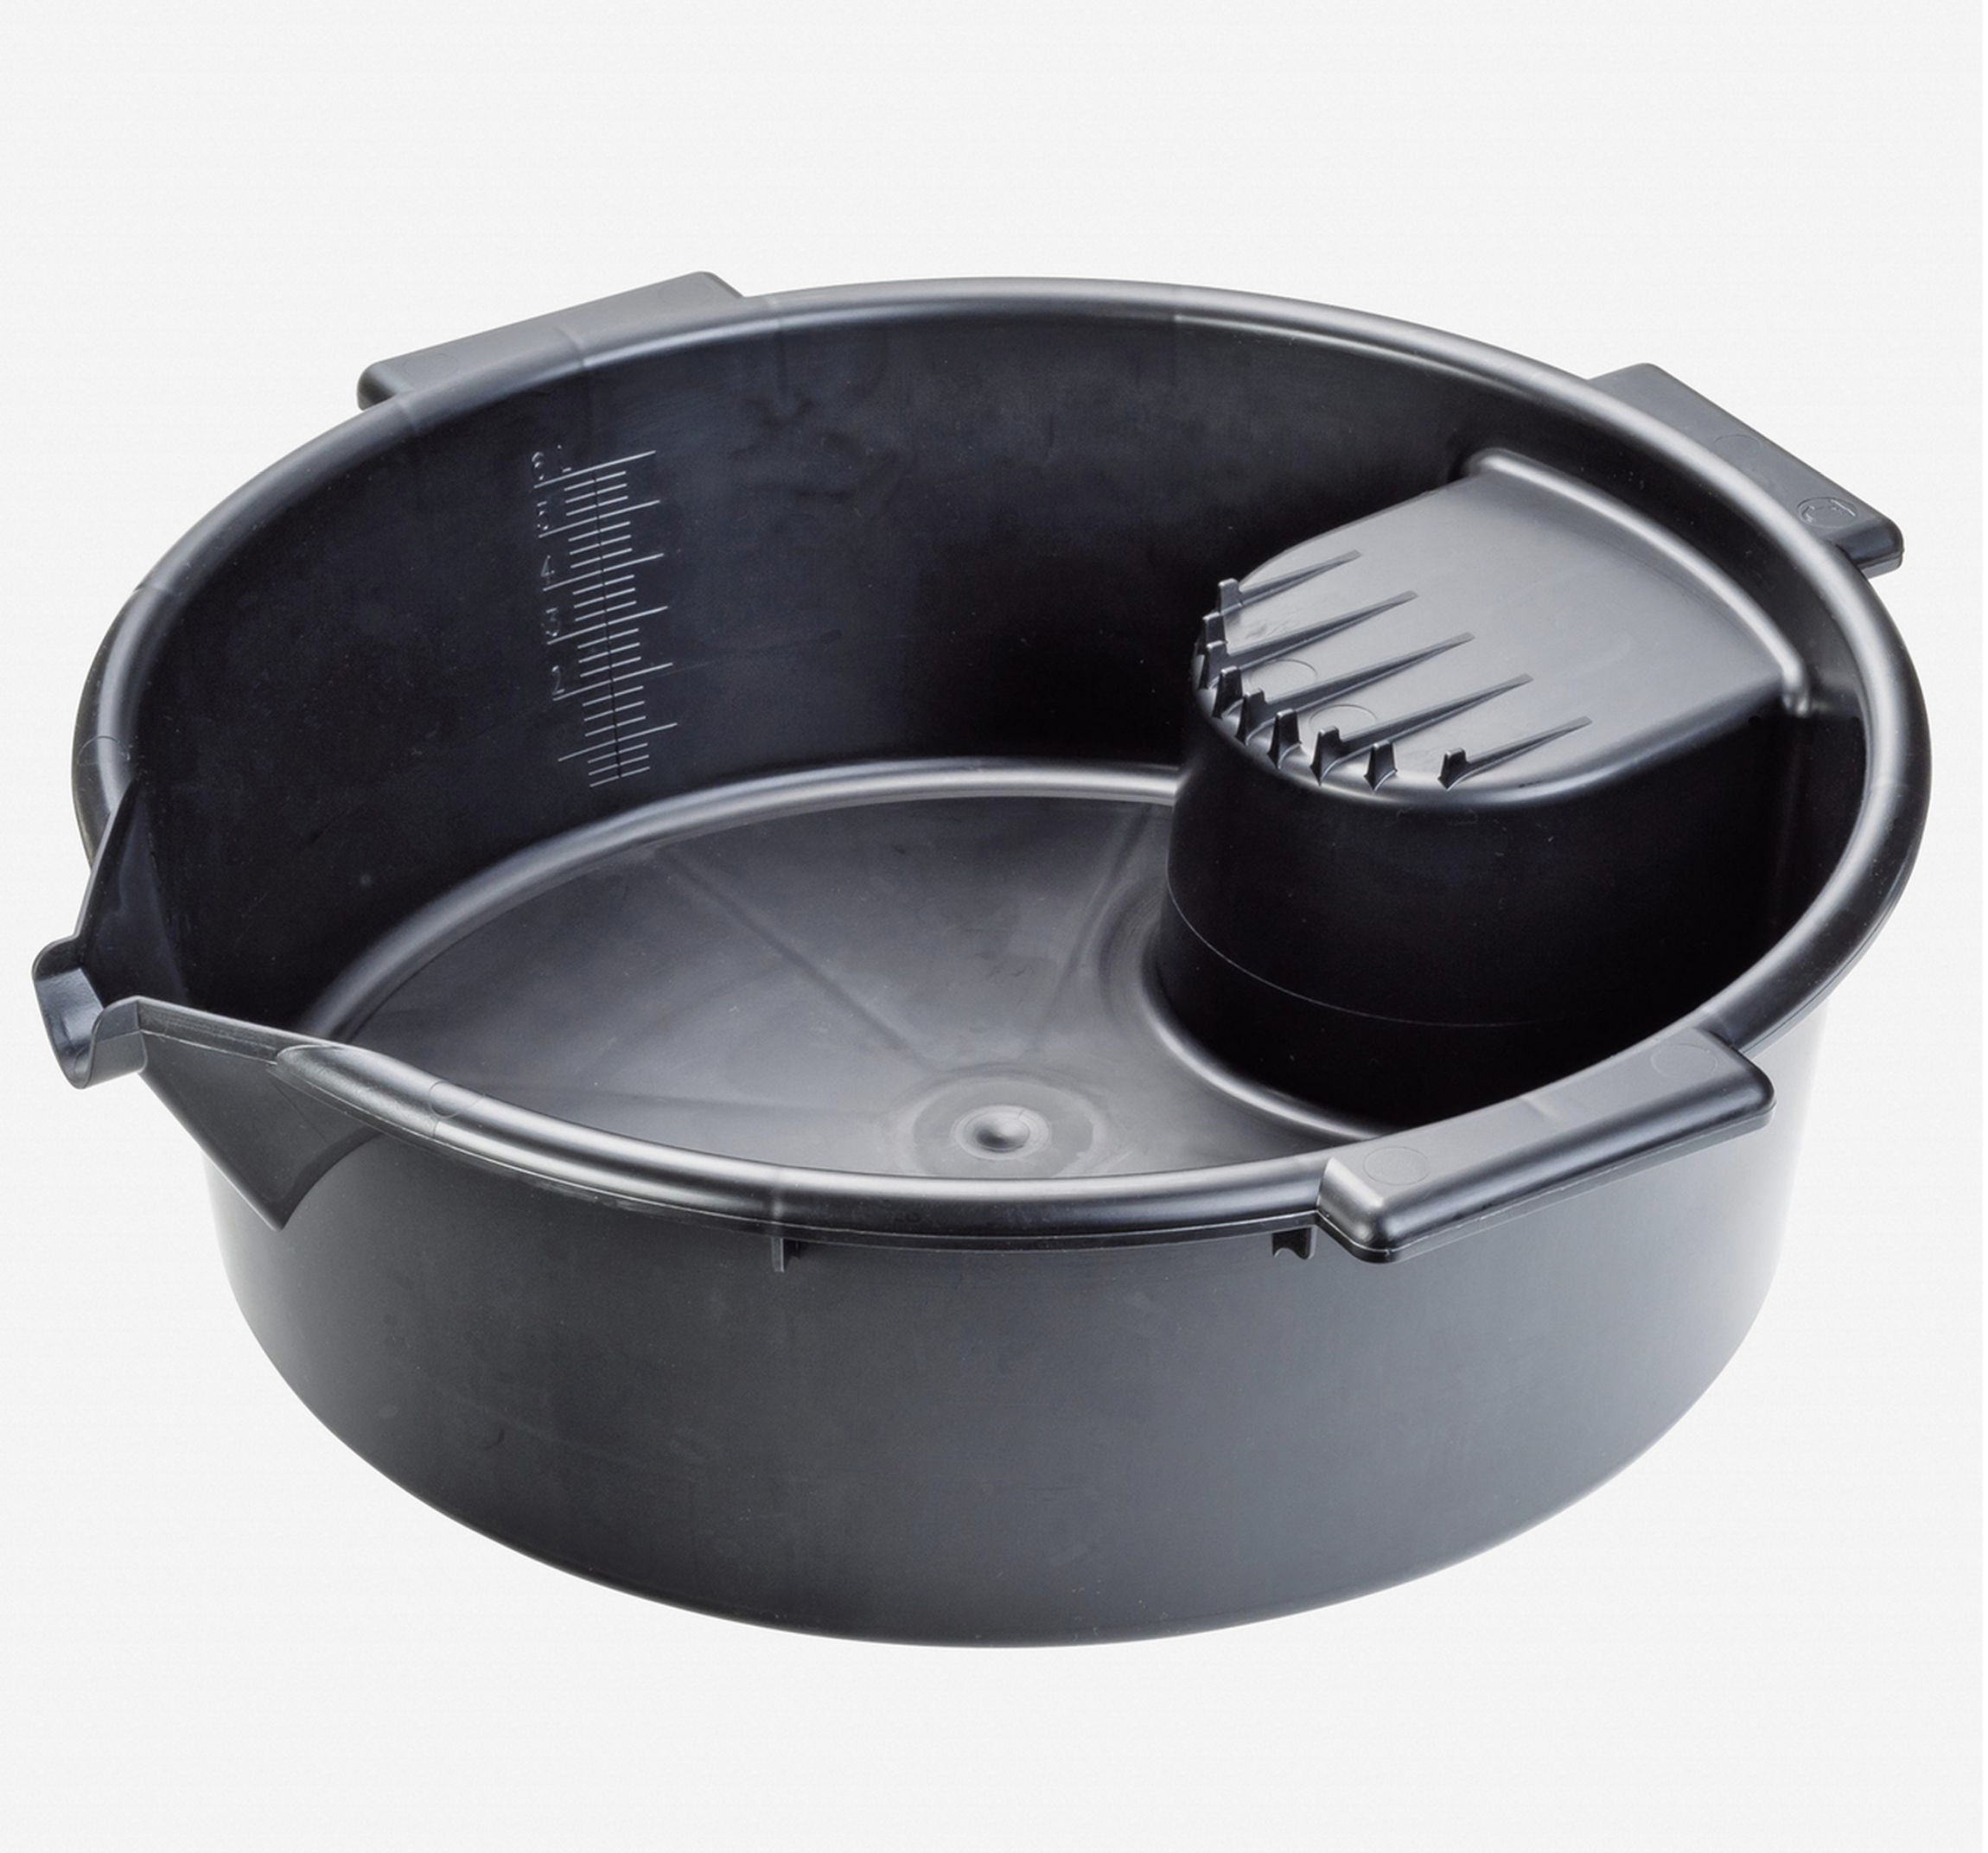 Hazet 197N-1 Multifunctional drain pan  - KC Tool